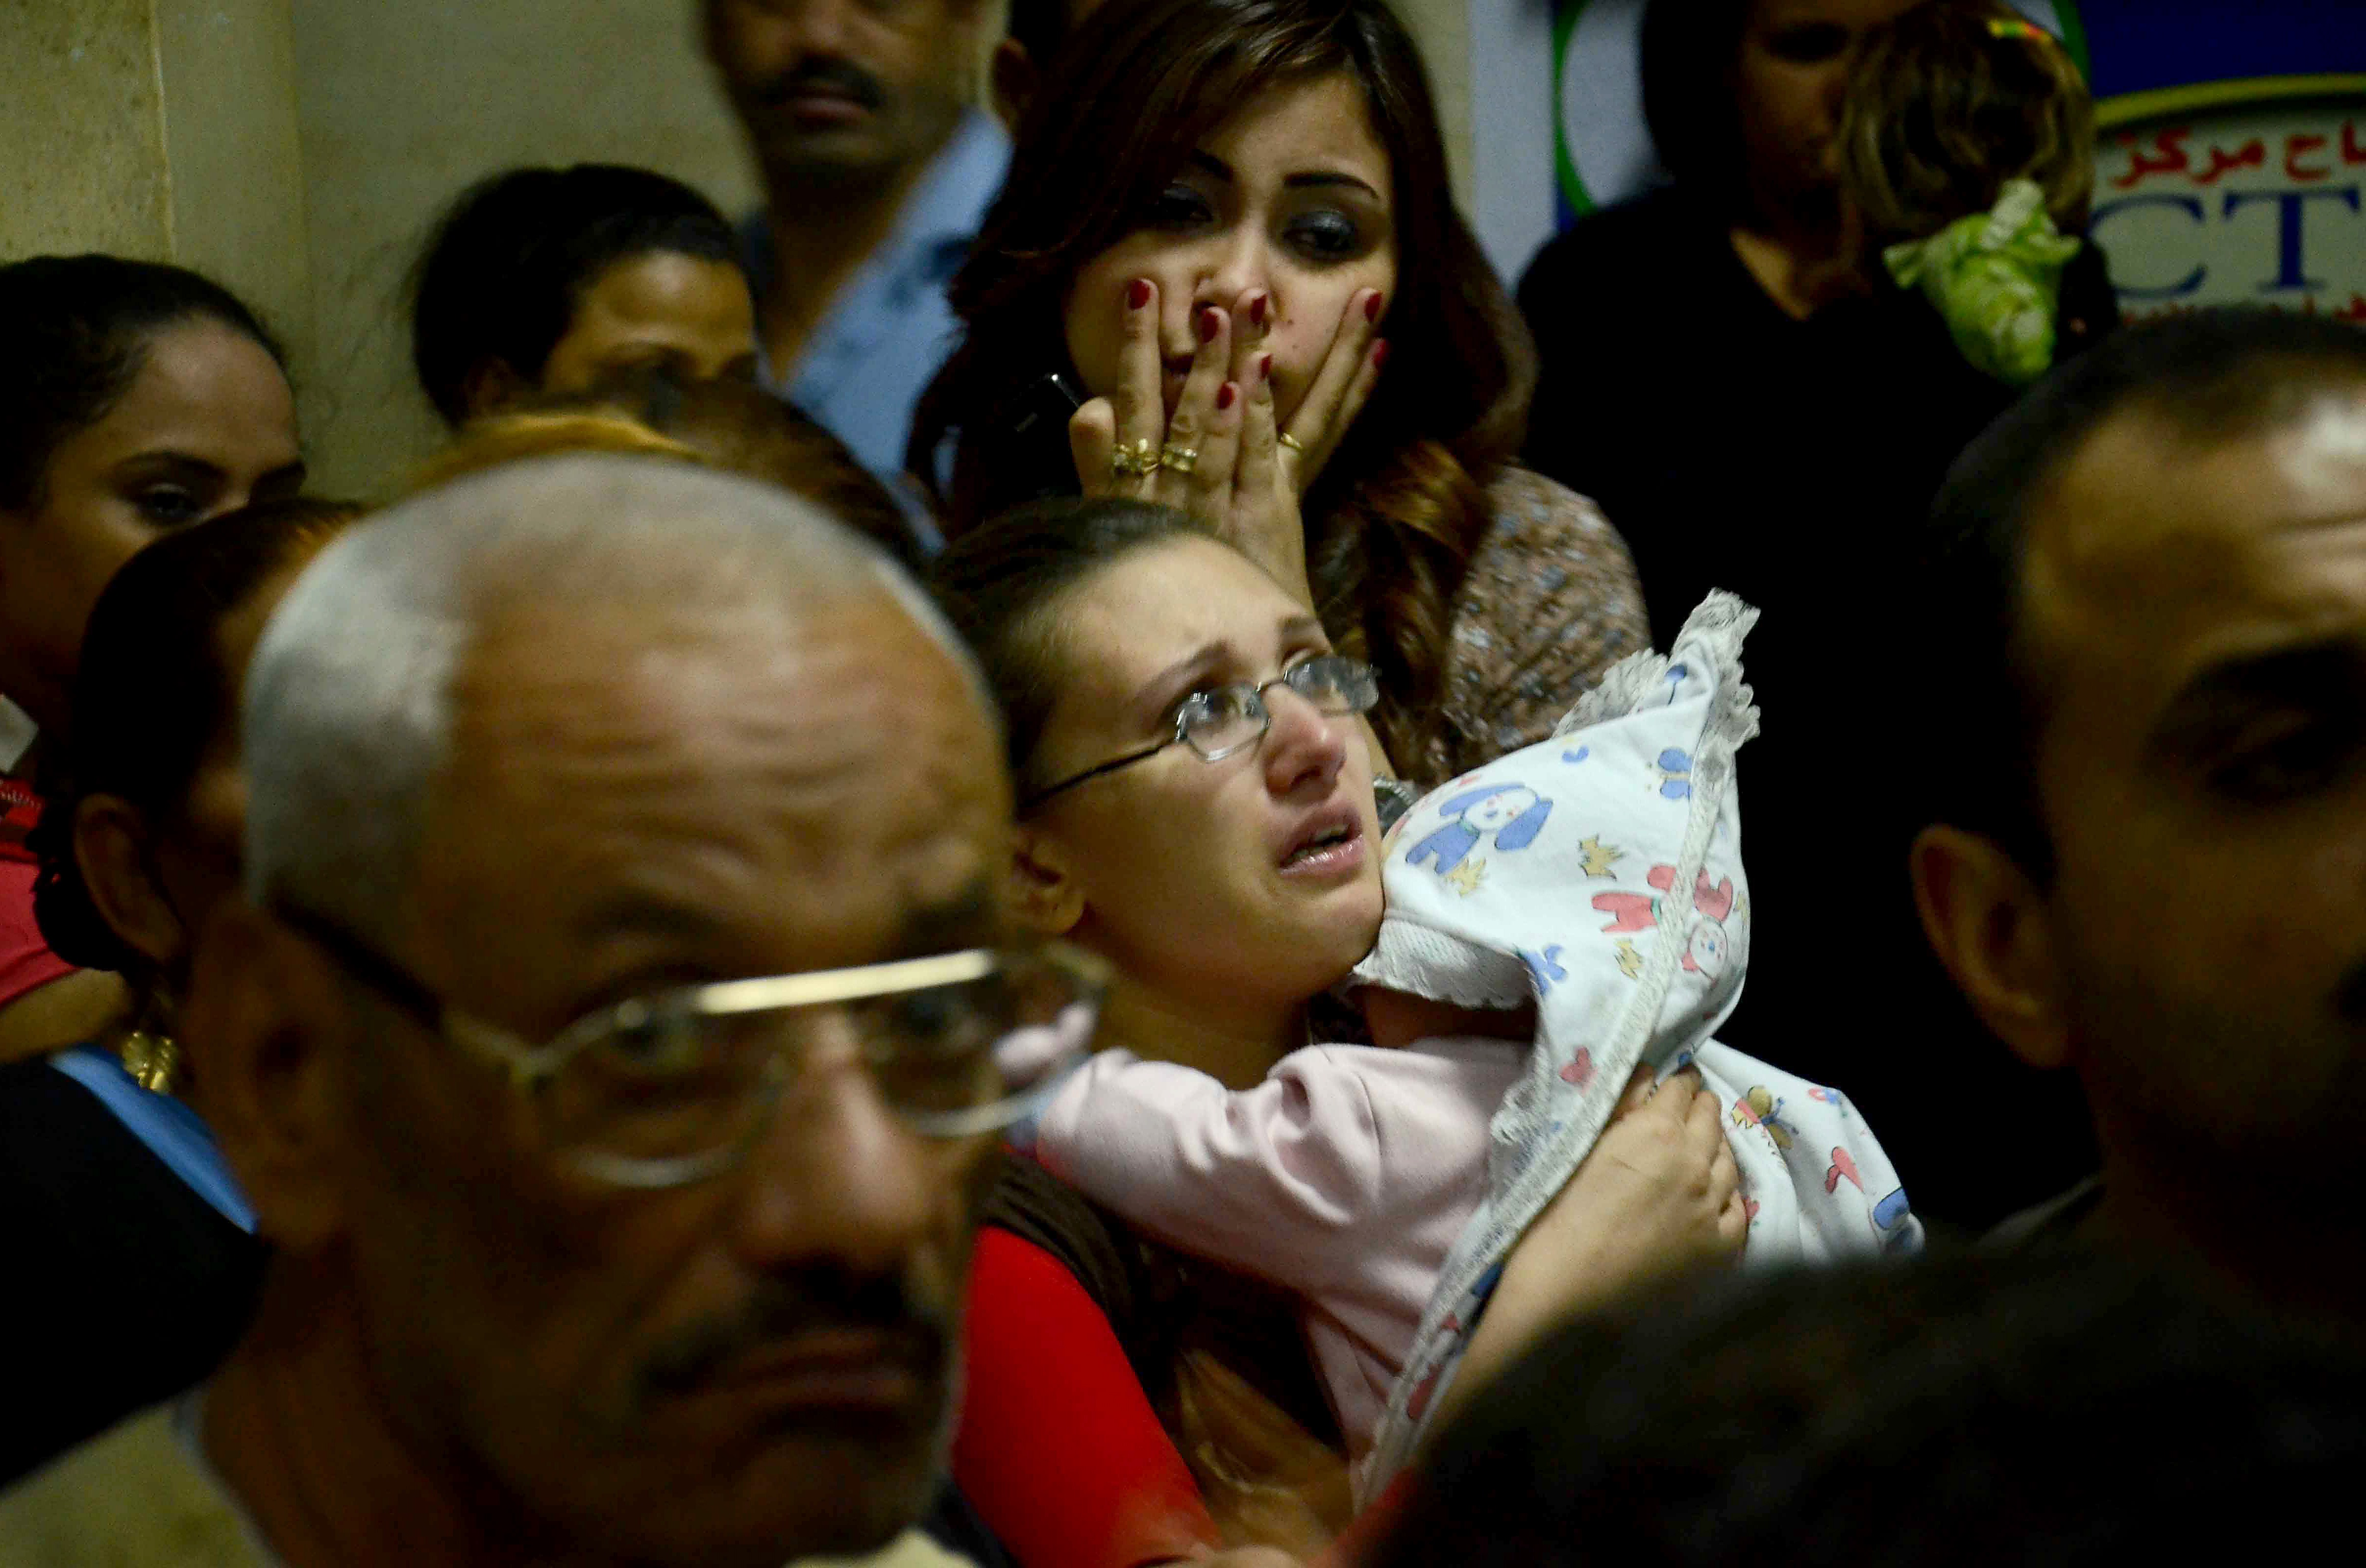 Egyptian women, some in tears, gather inside the Virgin Mary Coptic Christian church in Cairo after gunmen on a motorbike shot dead several people.   AFP PHOTO /